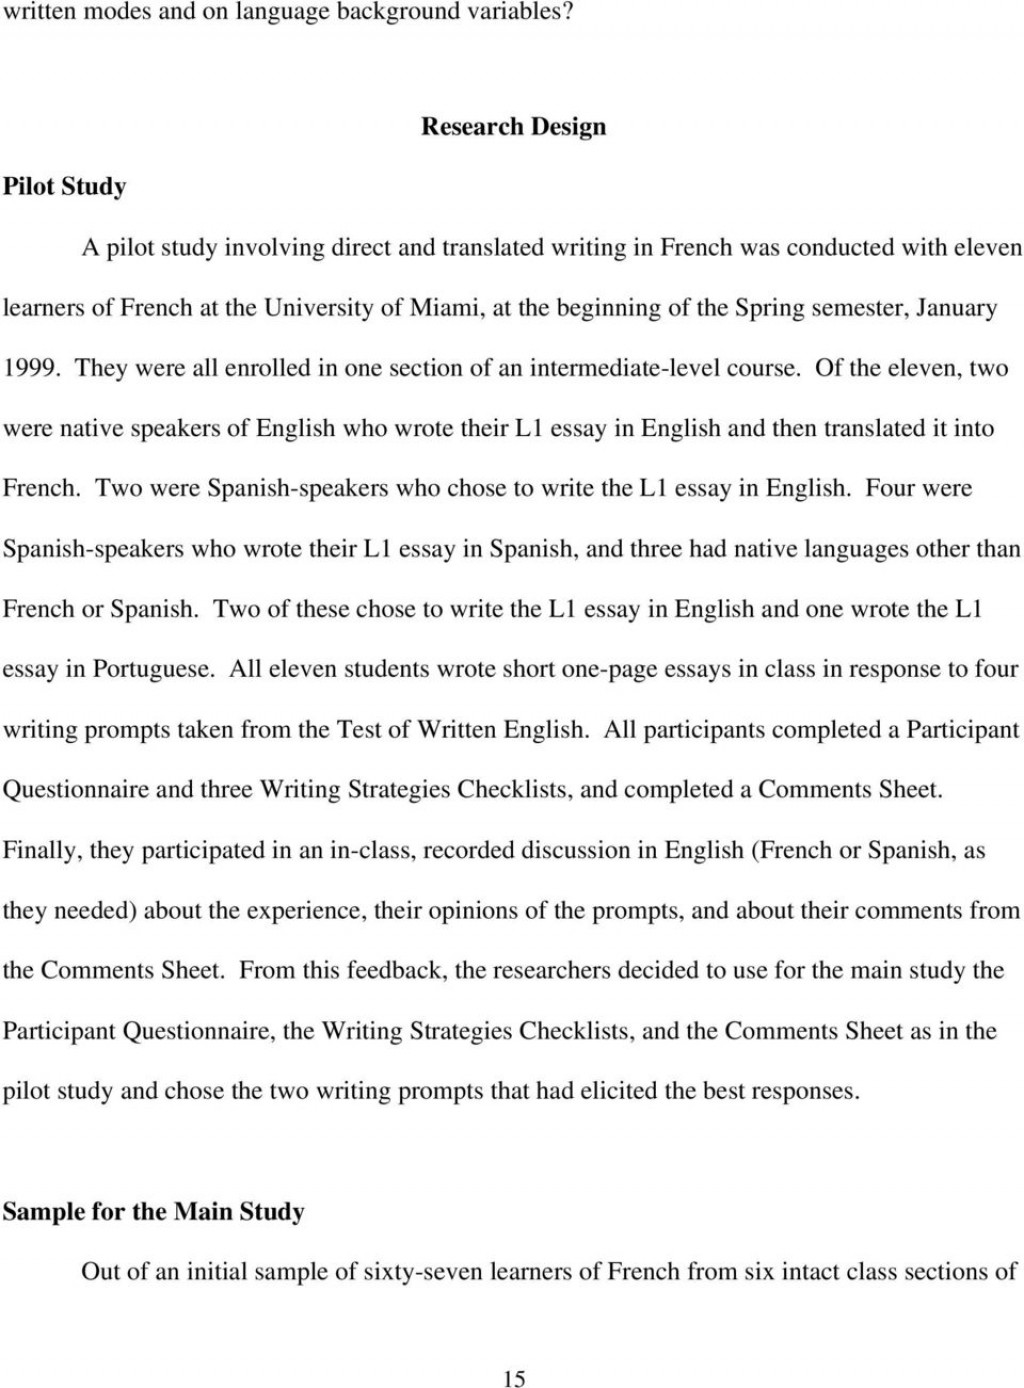 002 Essay Example Essays In Spanish Direct Vs Translated Writing What Students Do And The Google Translate Pa Write Your My Teaching Phrases How To An About Yourself Fascinating Tips For Written Large